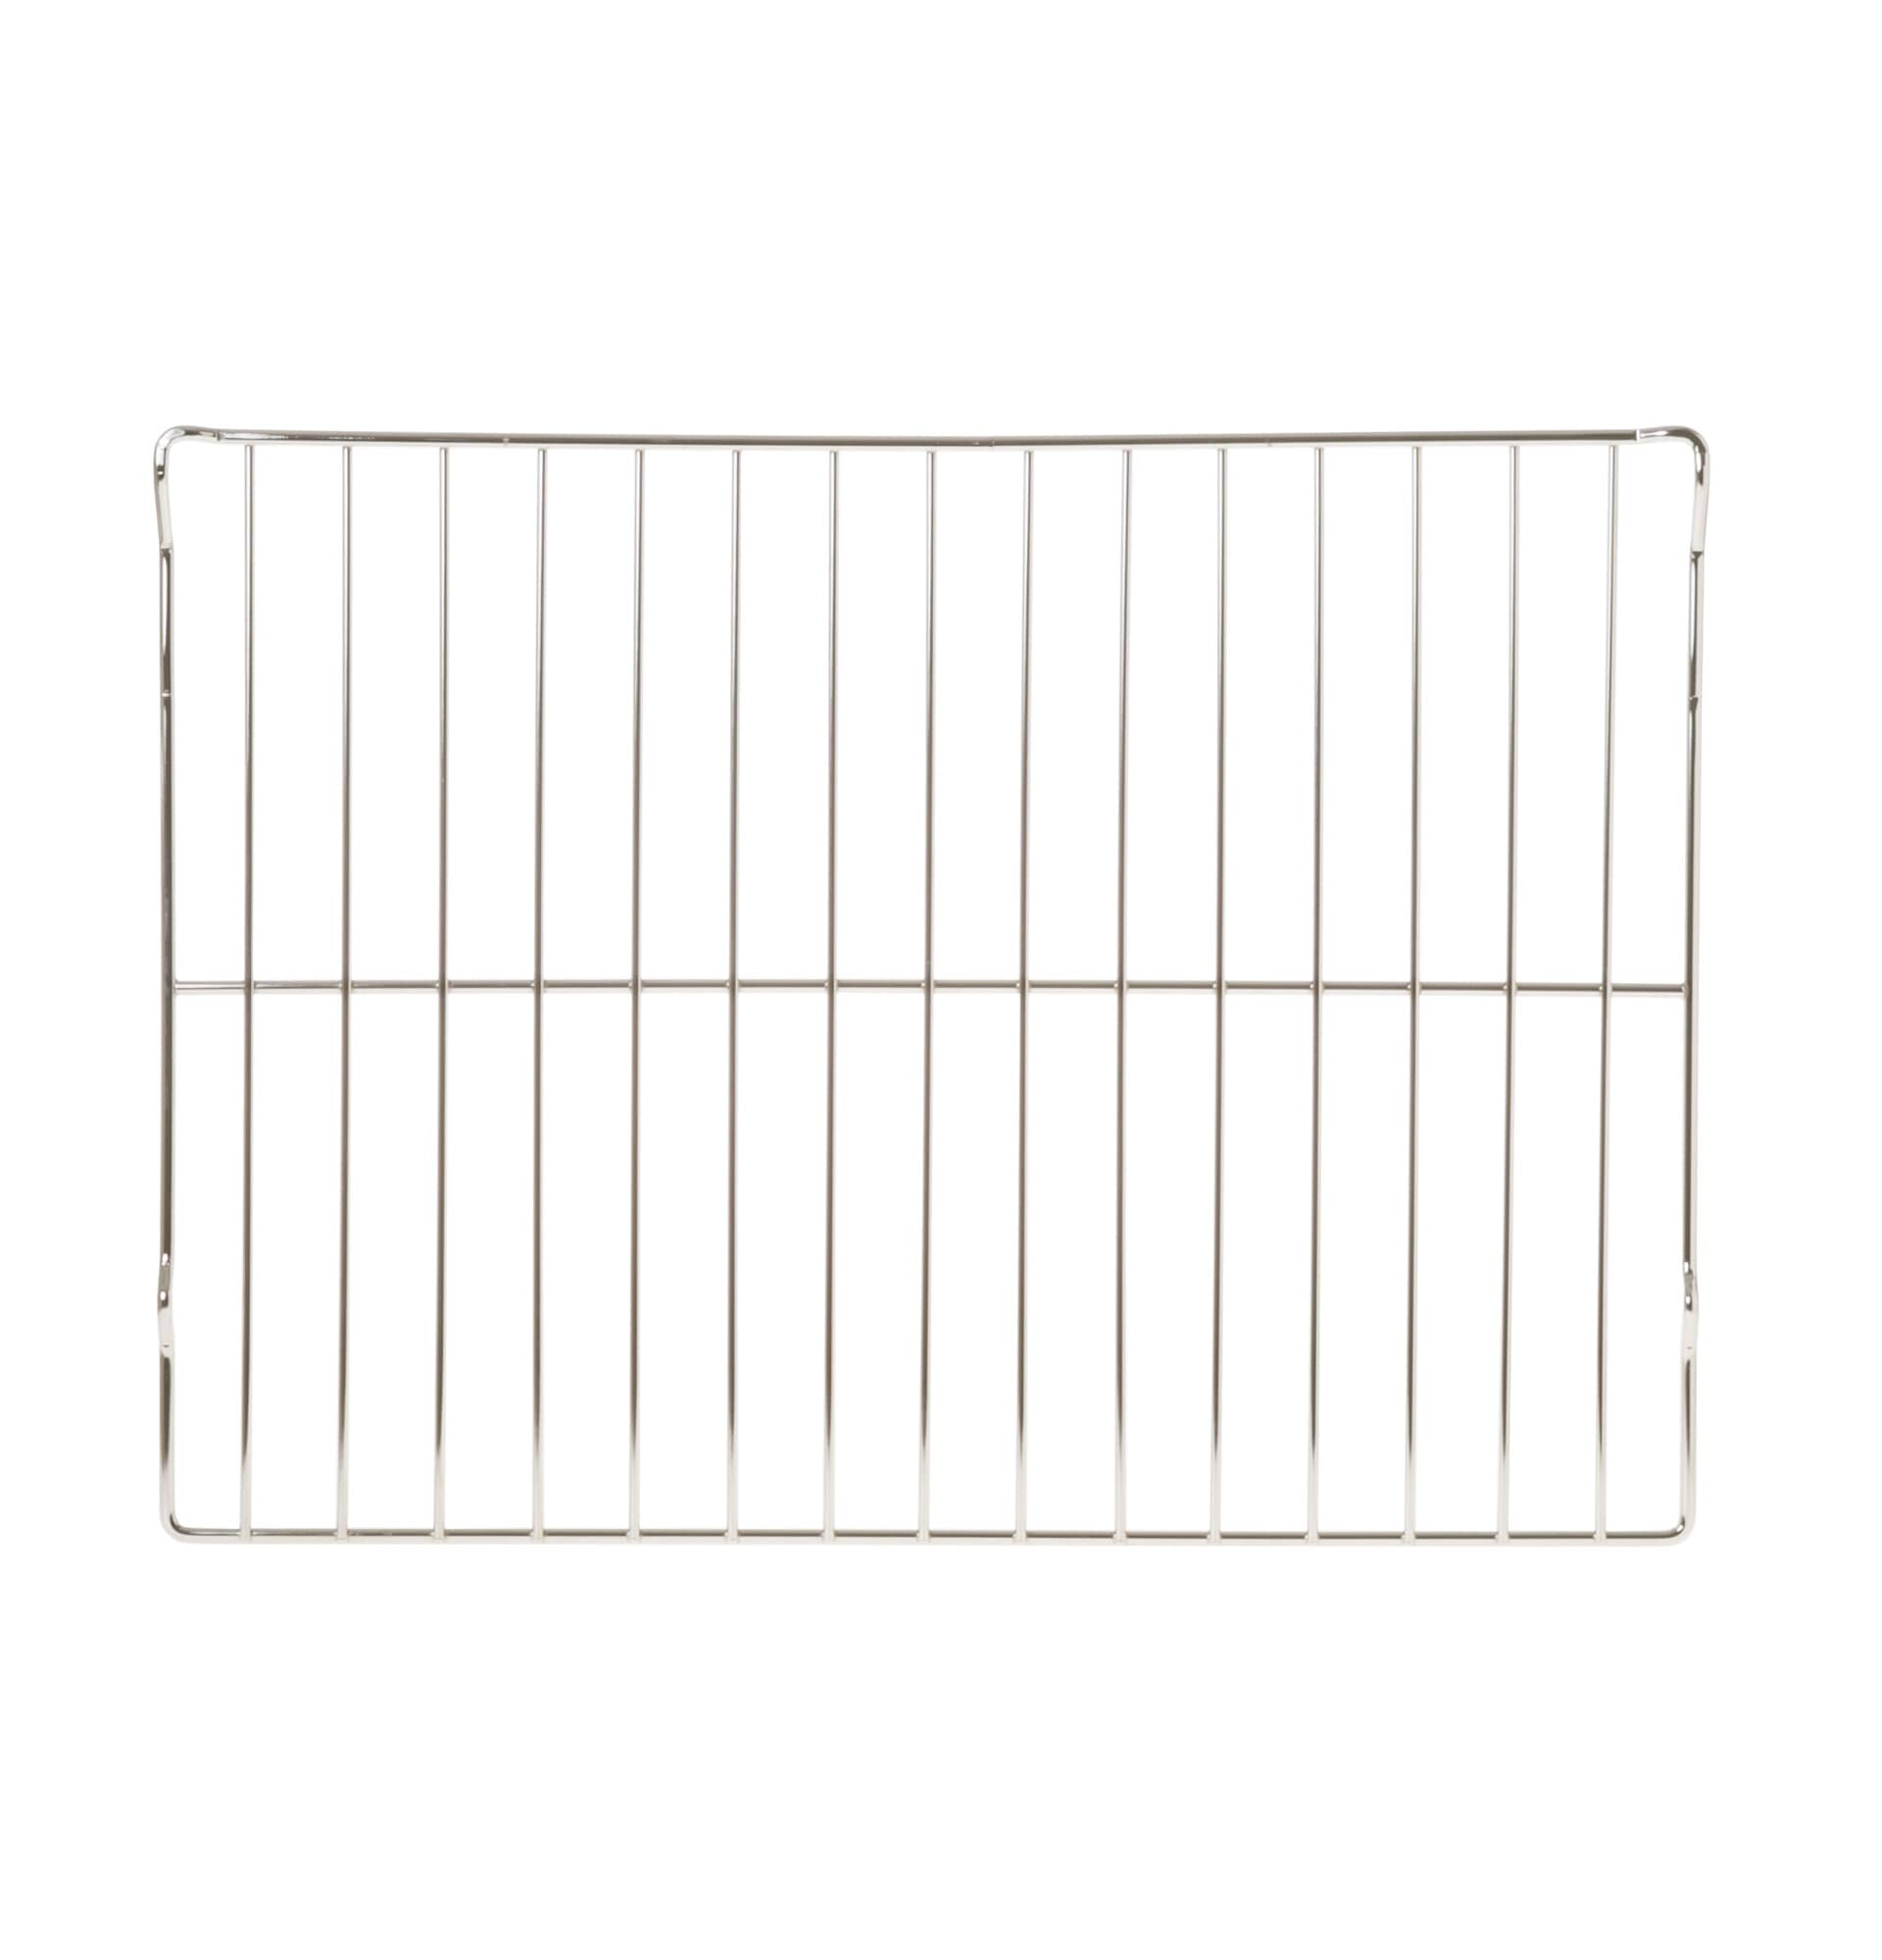 GE Appliance WB48T10049 OVEN RACK